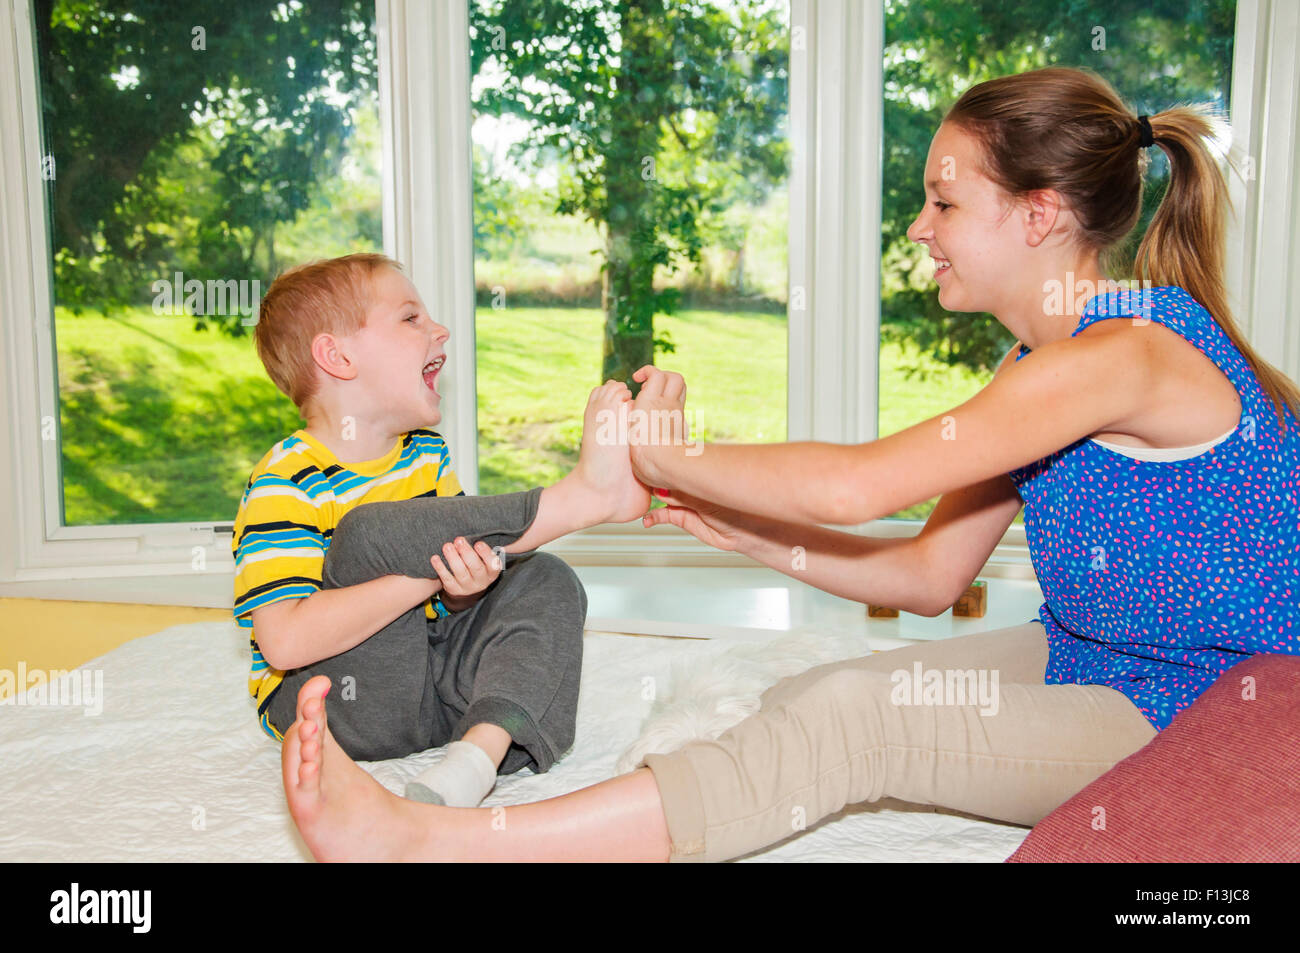 Girl tickles her brothers foot while he laughs - Stock Image